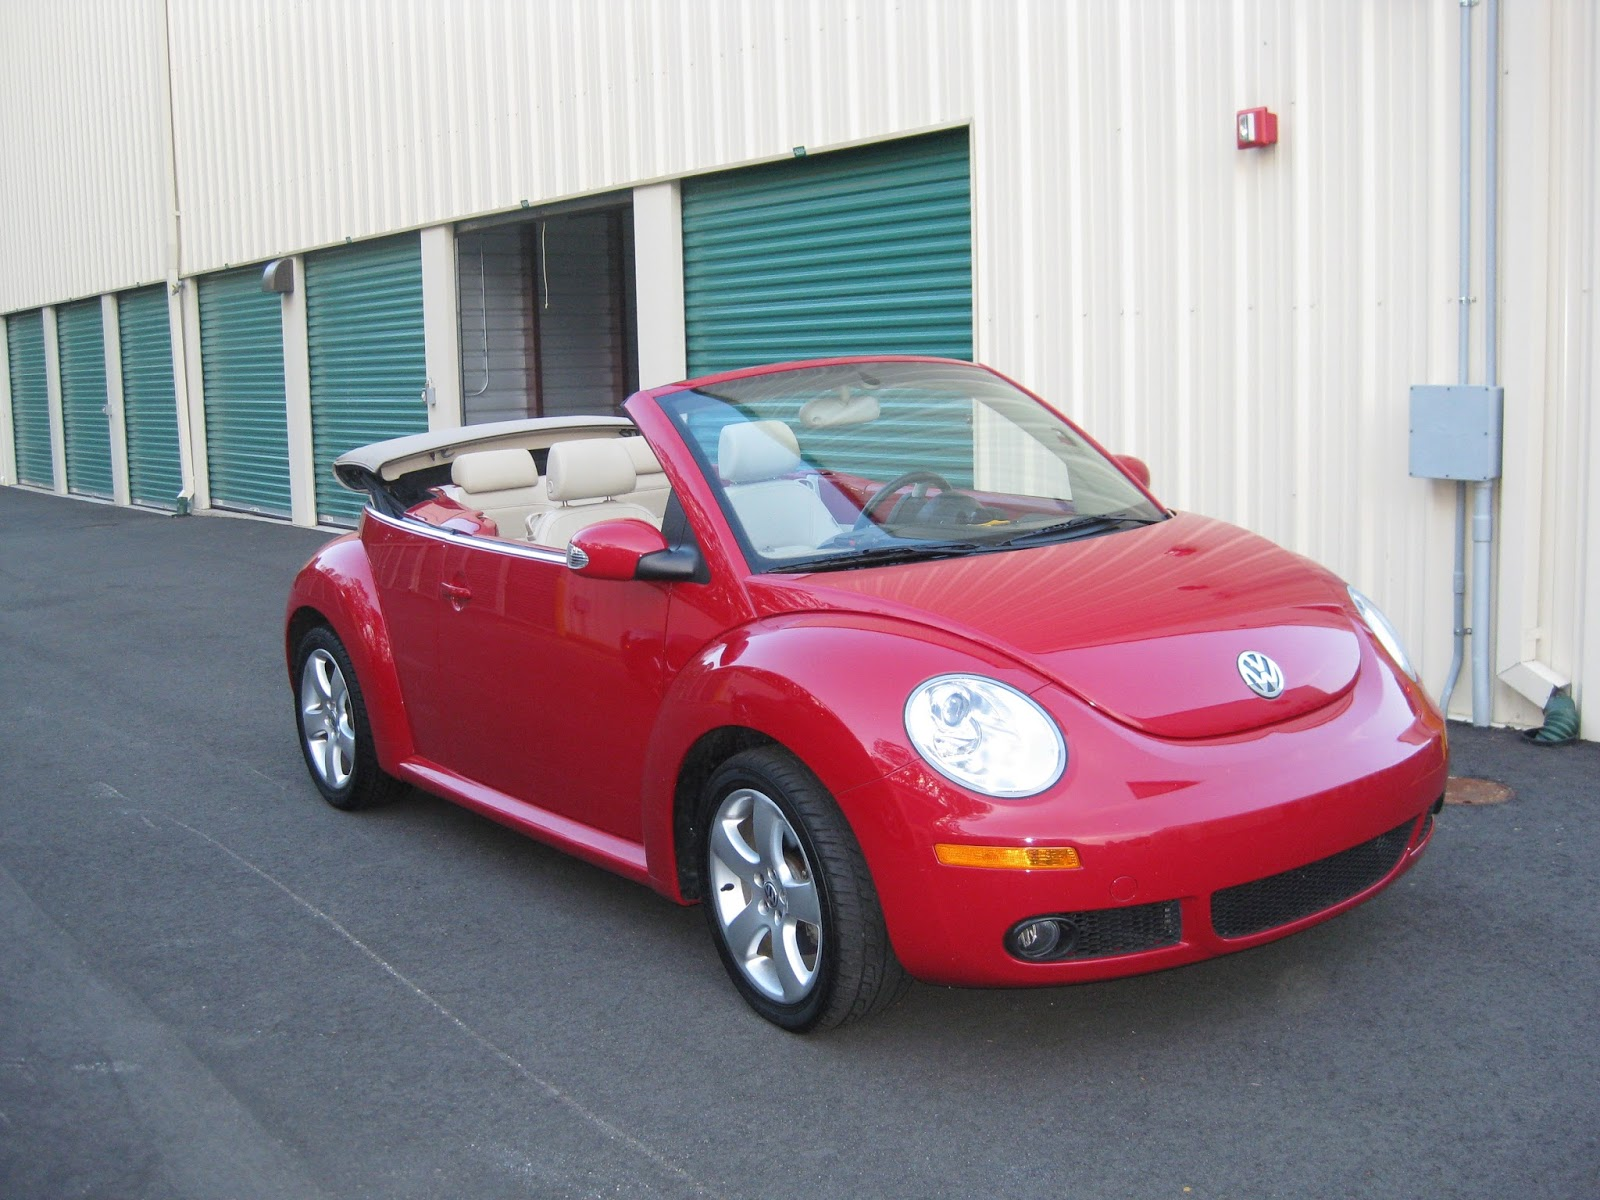 rue mouffetard 2006 v w beetle convertible for sale nyc. Black Bedroom Furniture Sets. Home Design Ideas